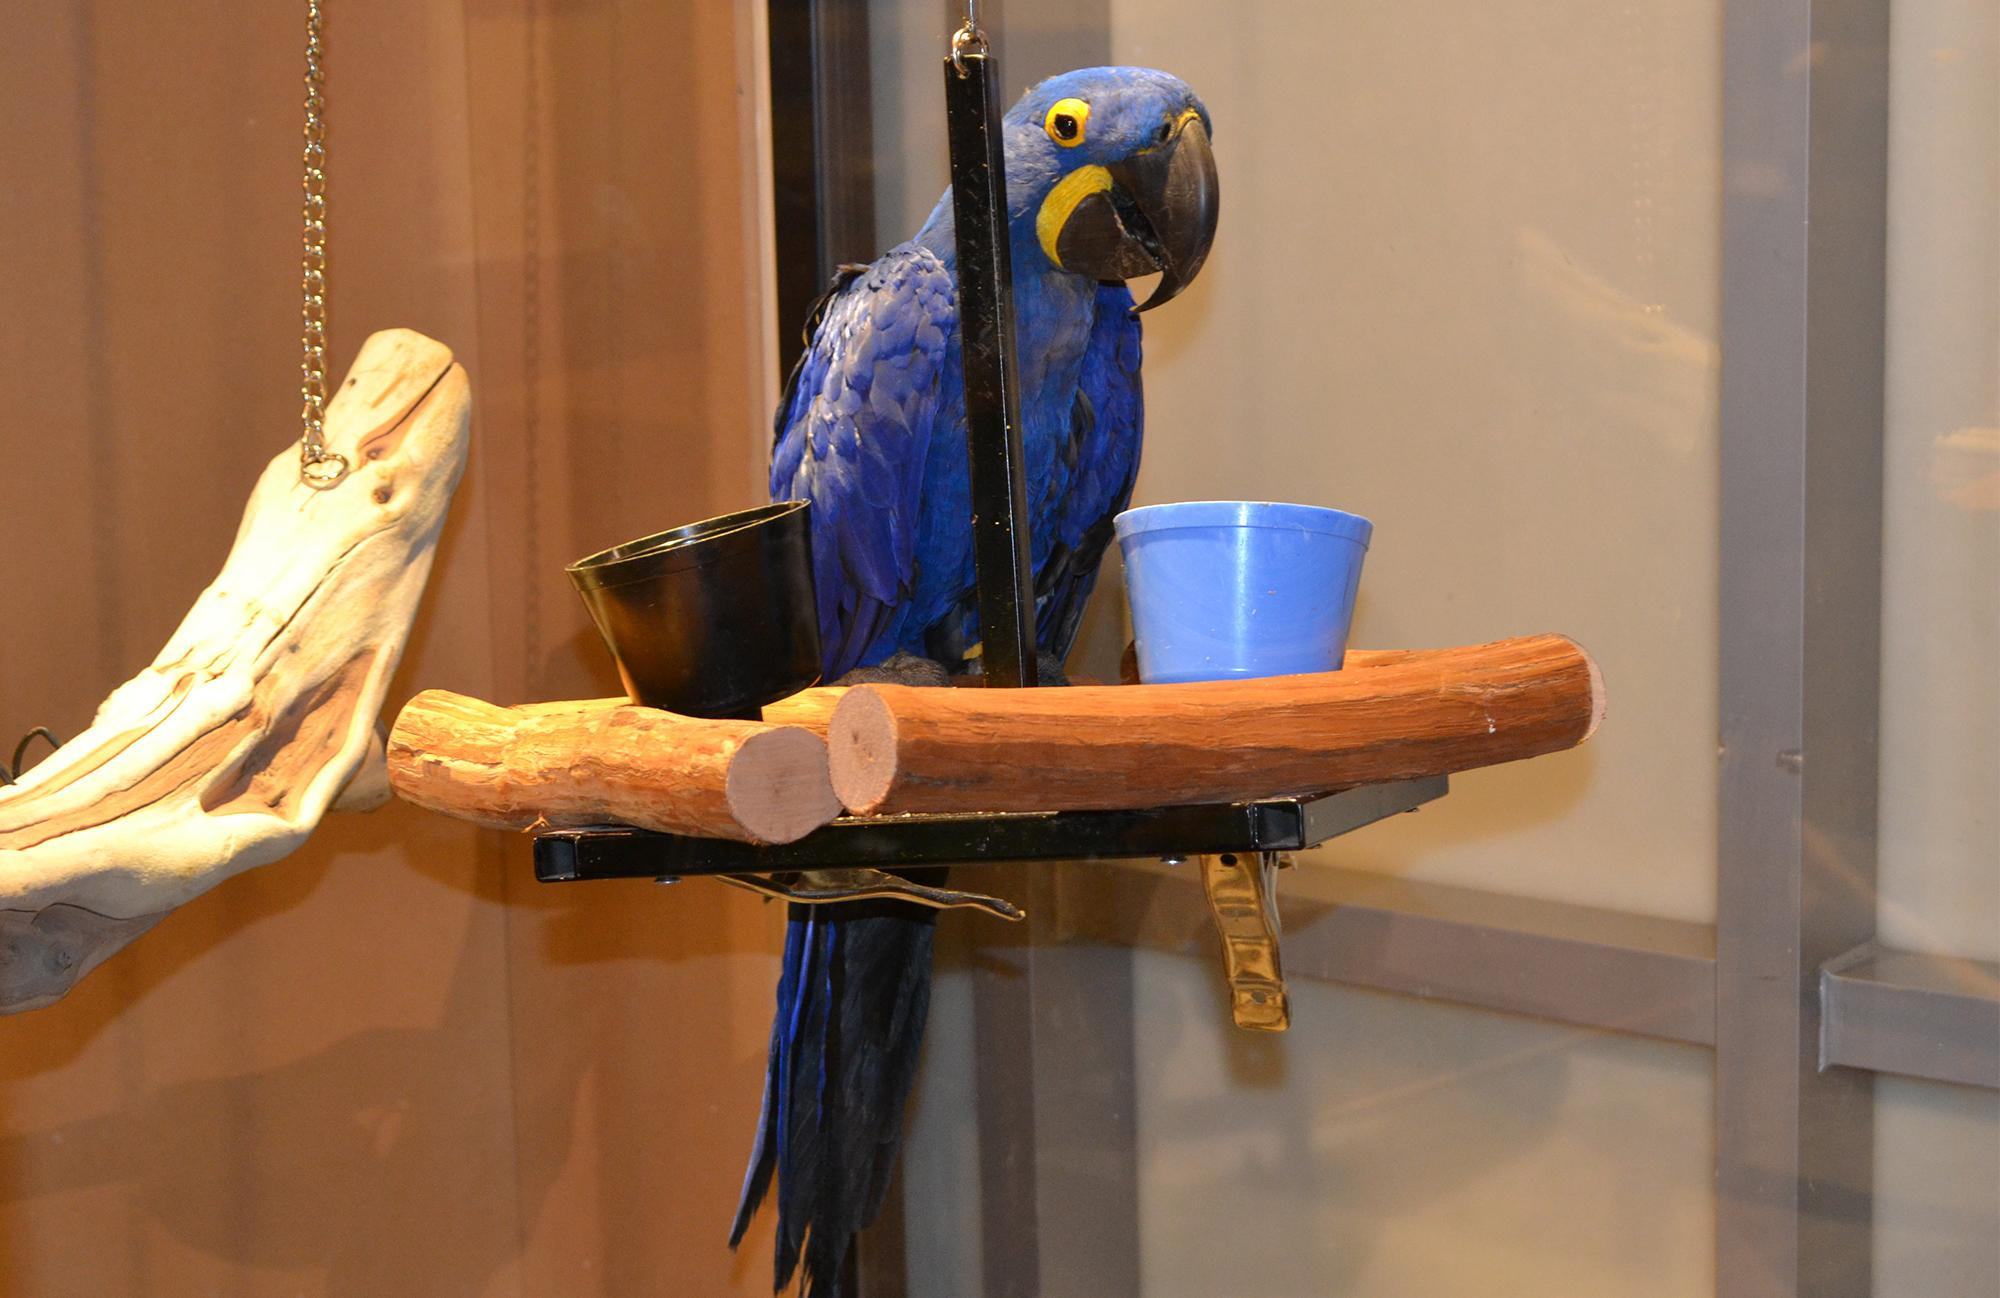 Noodle, an 18-year-old Hyacinth macaw at the Peggy Notebaert Nature Museum.